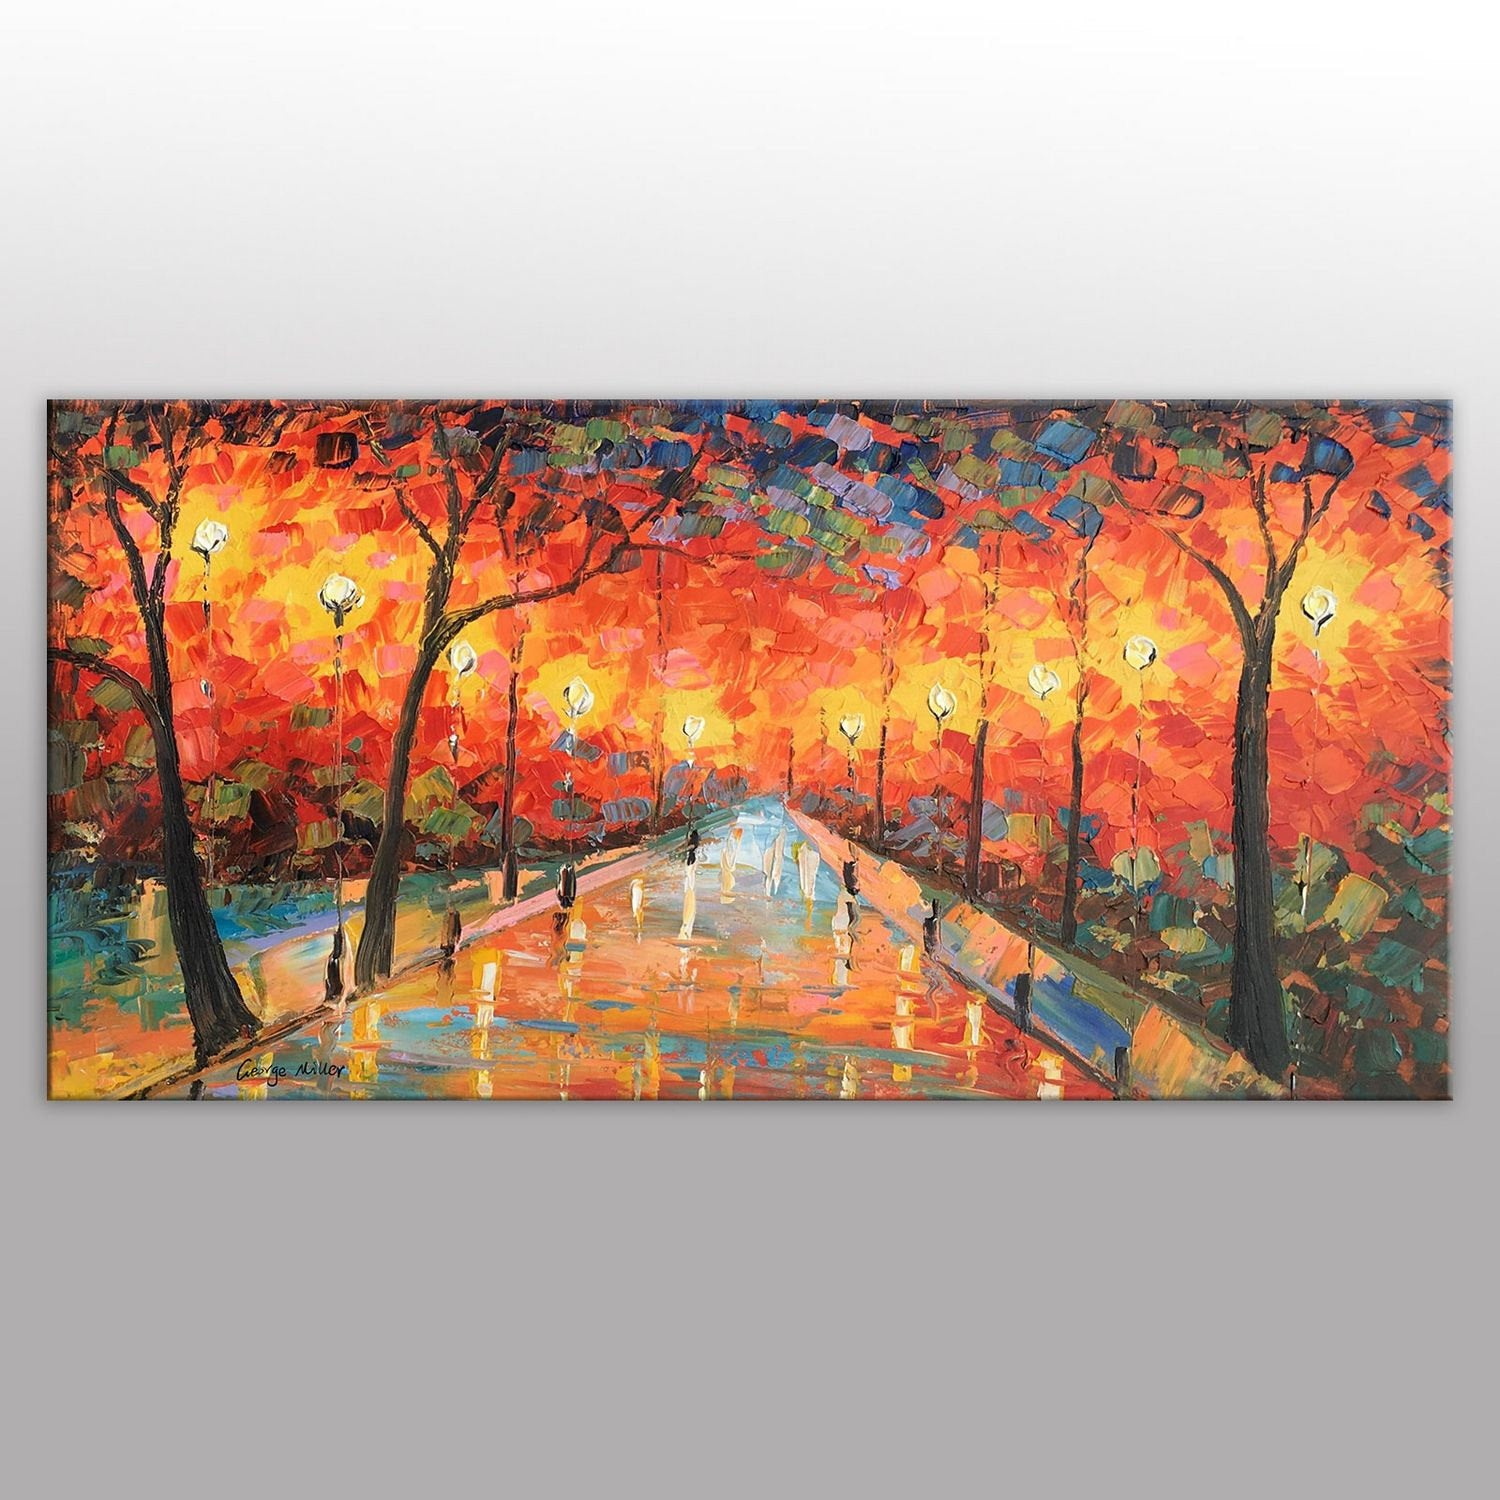 Original Oil Painting, Abstract Canvas Art, Abstract Oil Painting, Large Canvas Painting, Abstract Landscape Painting, Contemporary Wall Art